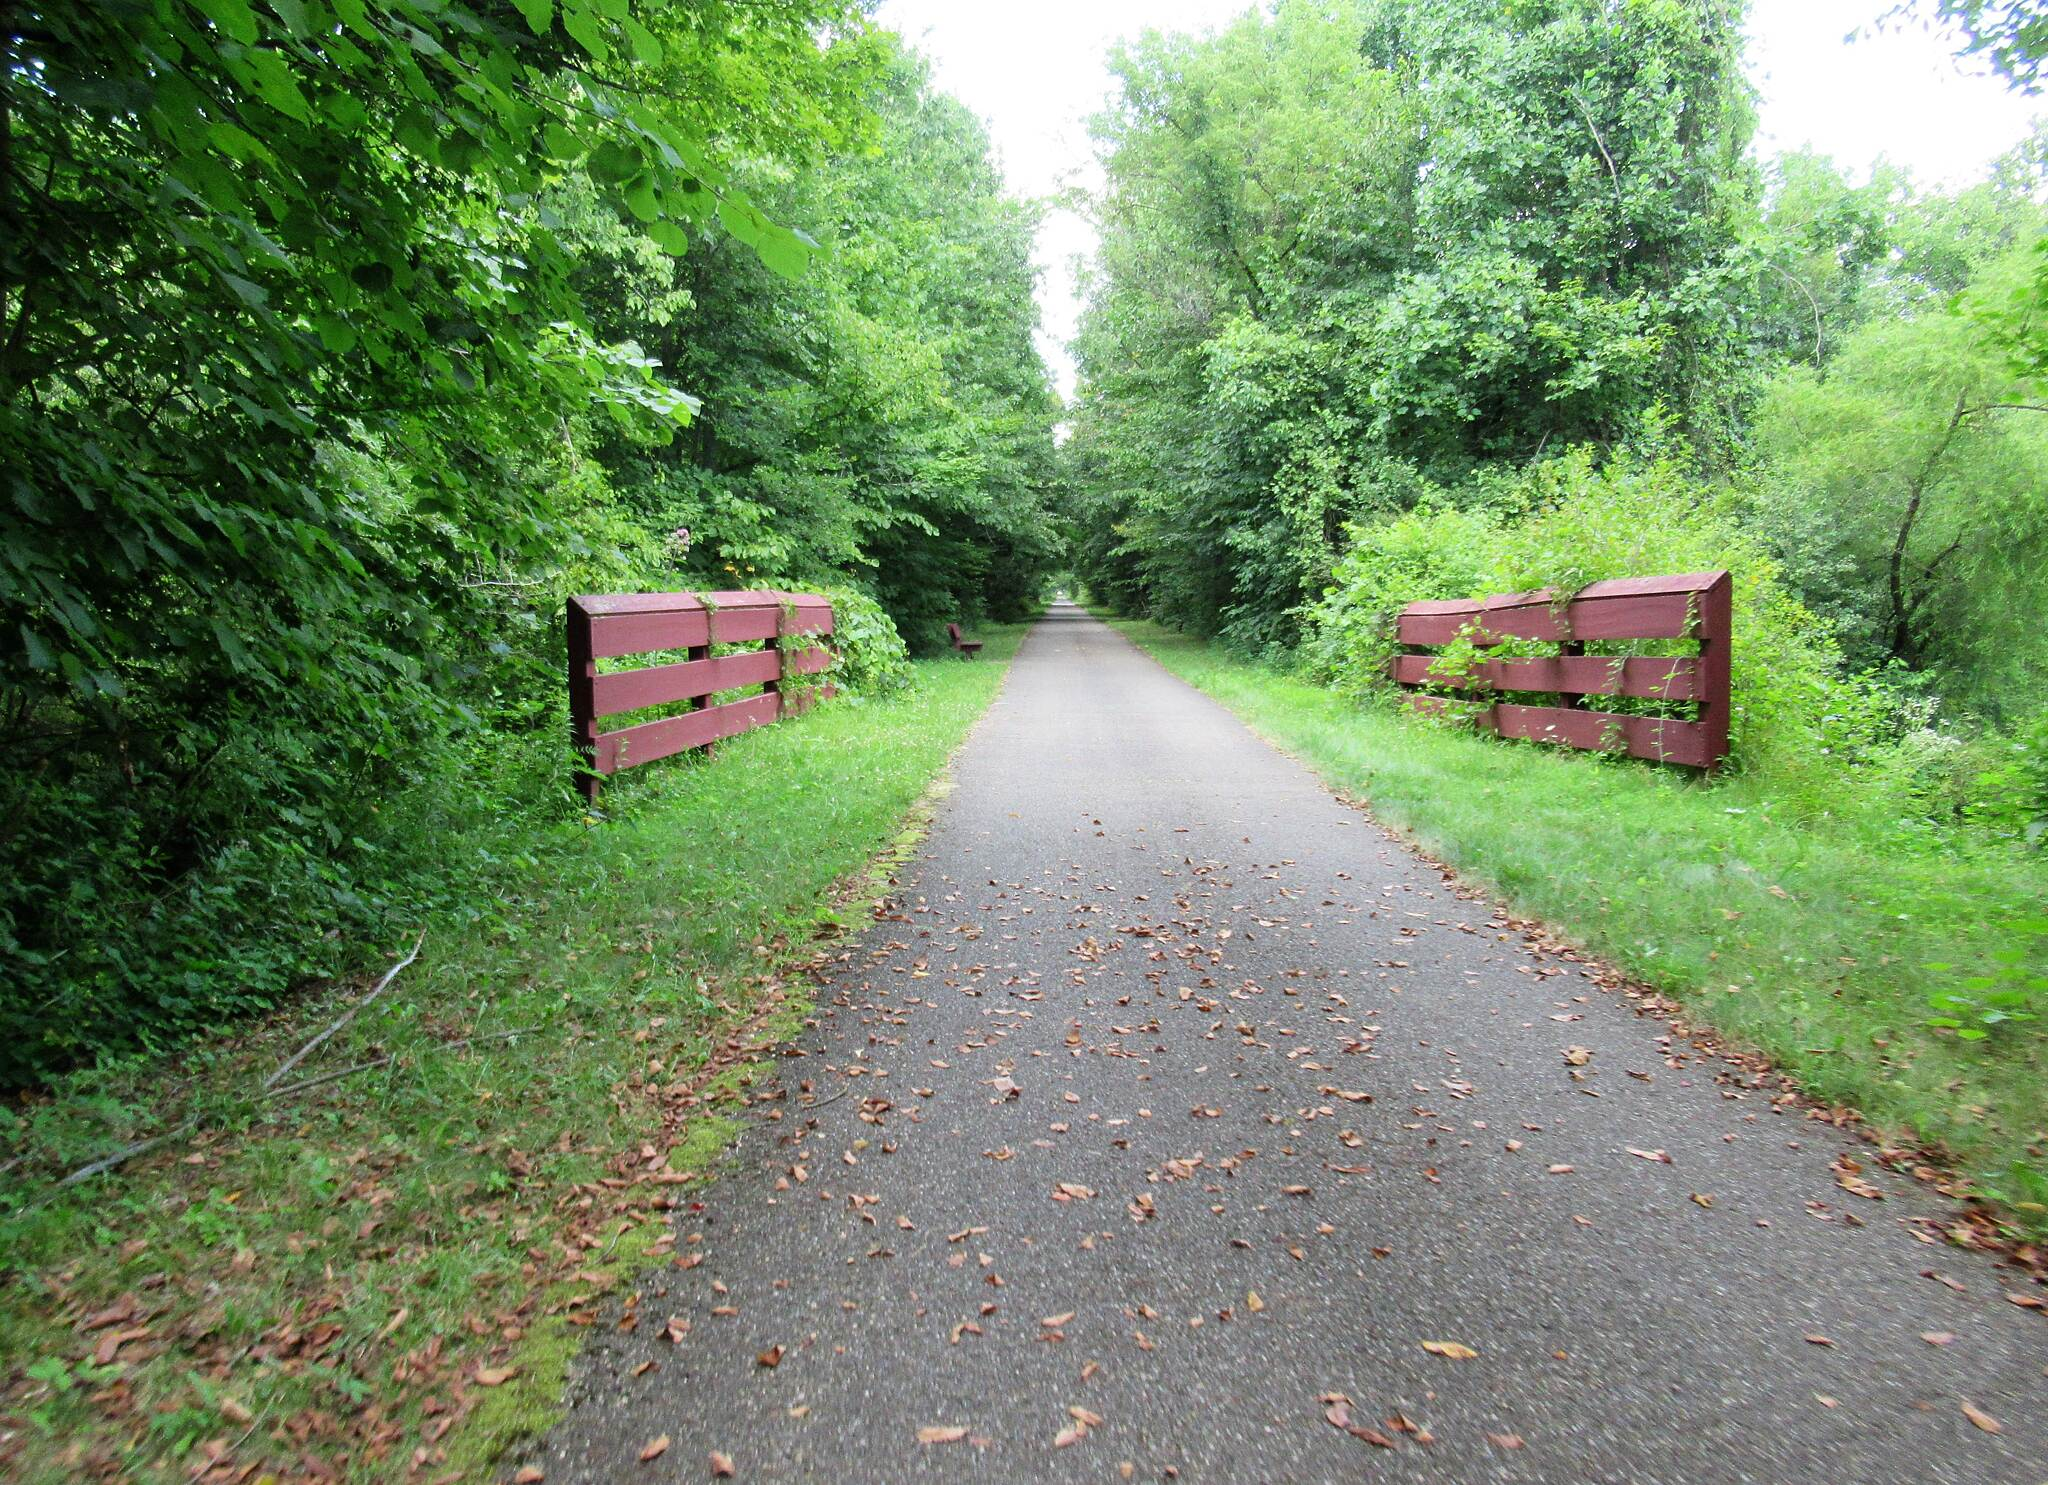 Western Reserve Greenway Trail August, 2019 along the trail. Just North of Sunside trailhead.